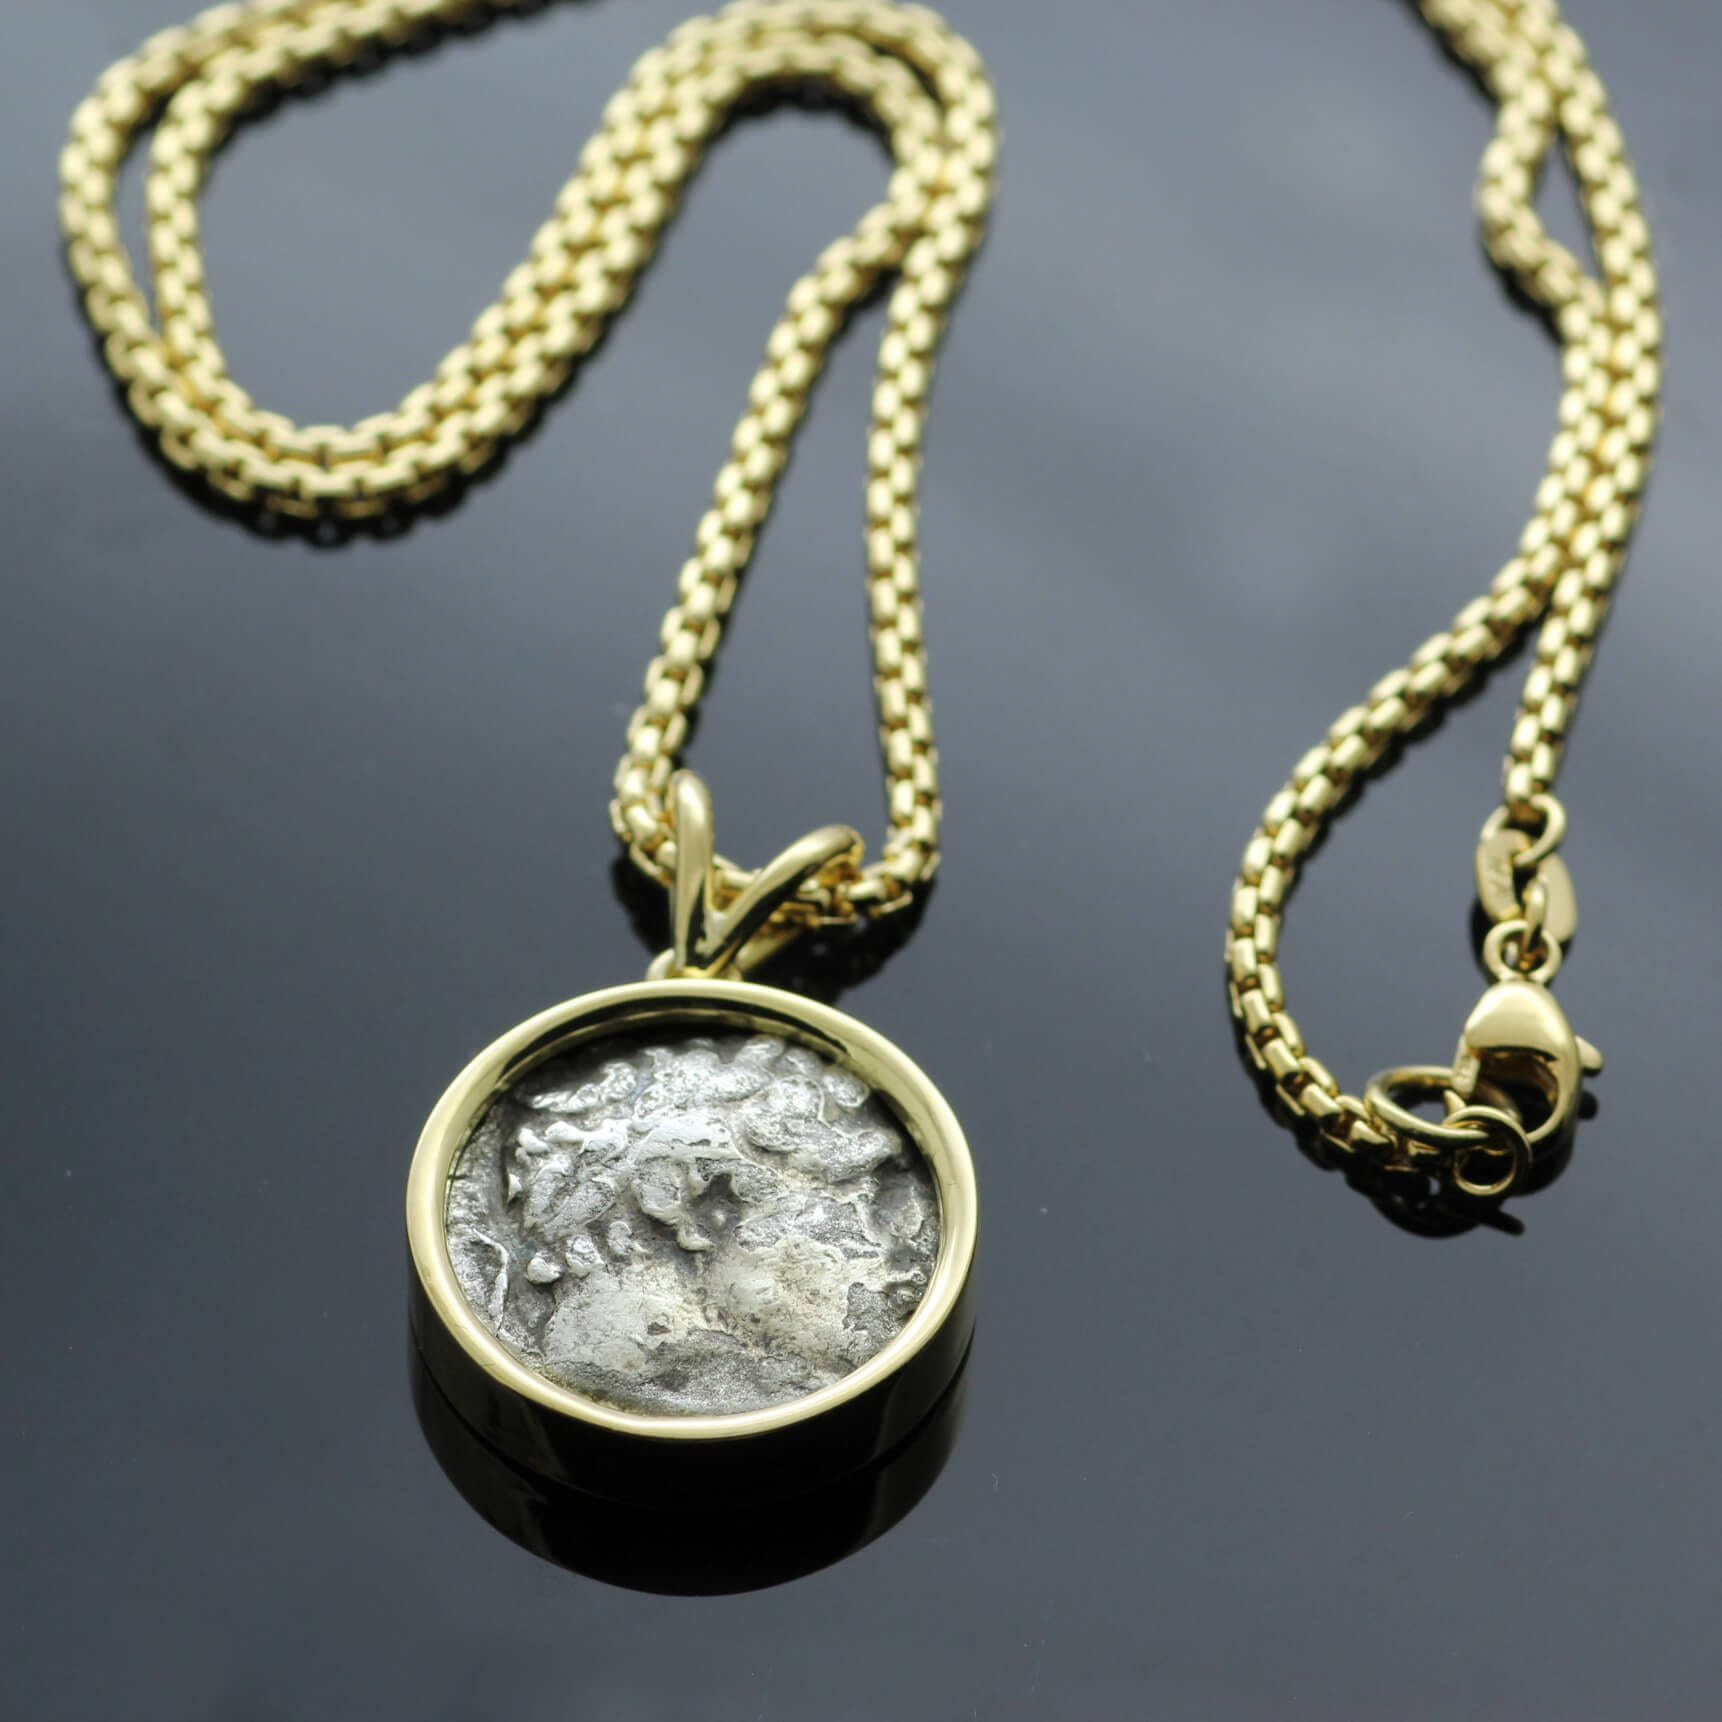 Bespoke Yellow Gold Antique Bekah coin necklace